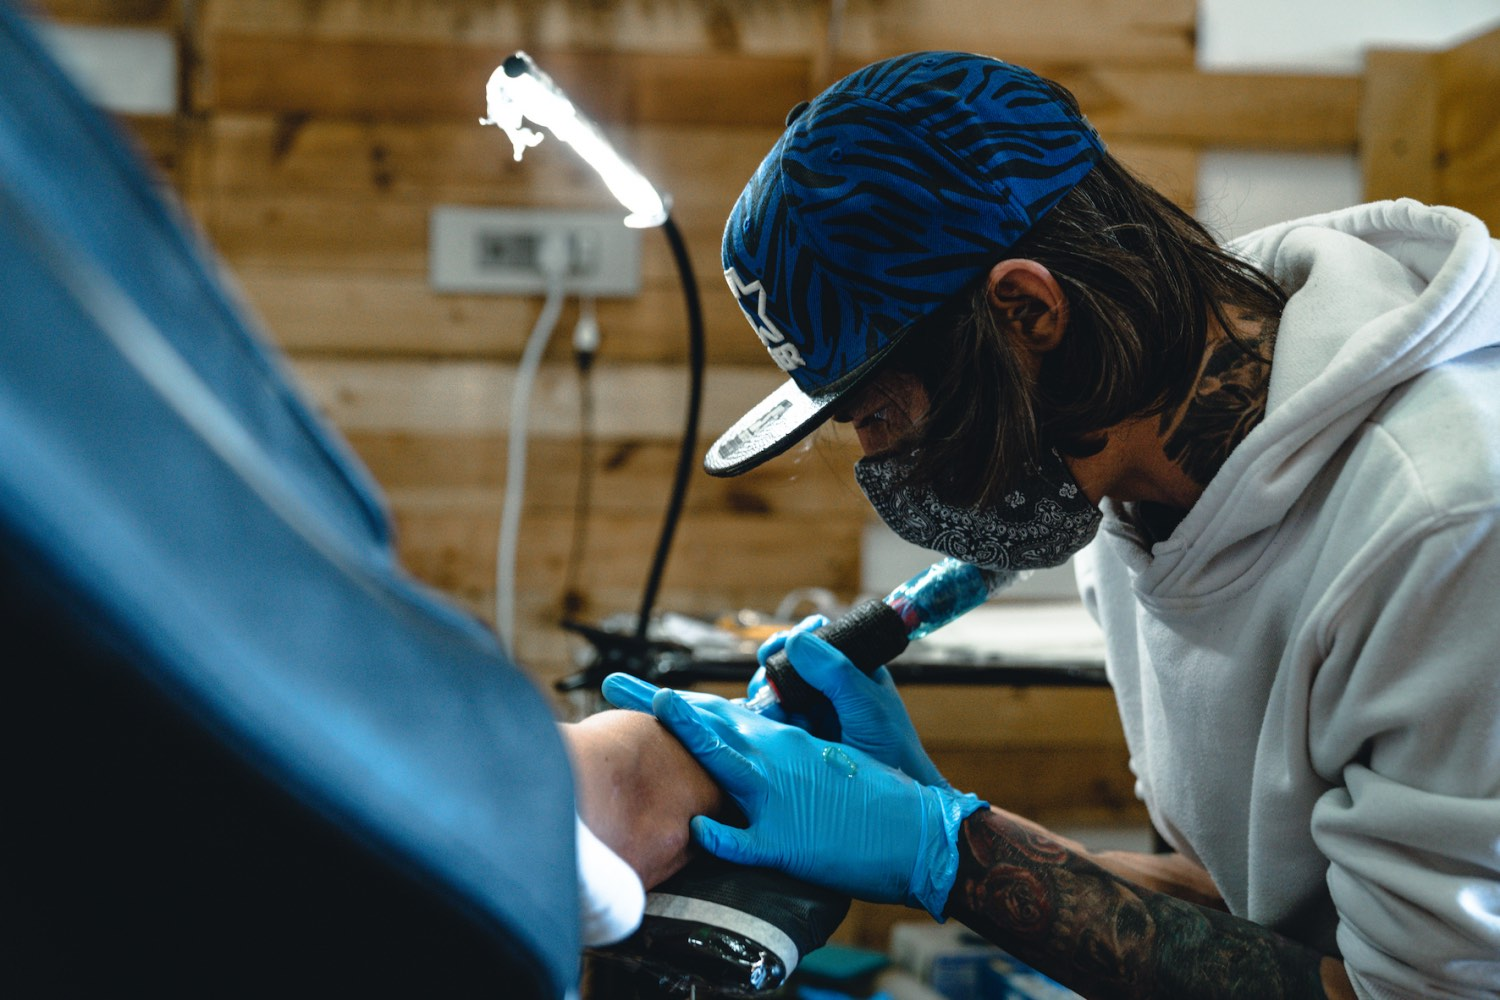 James Rype tattooing a client